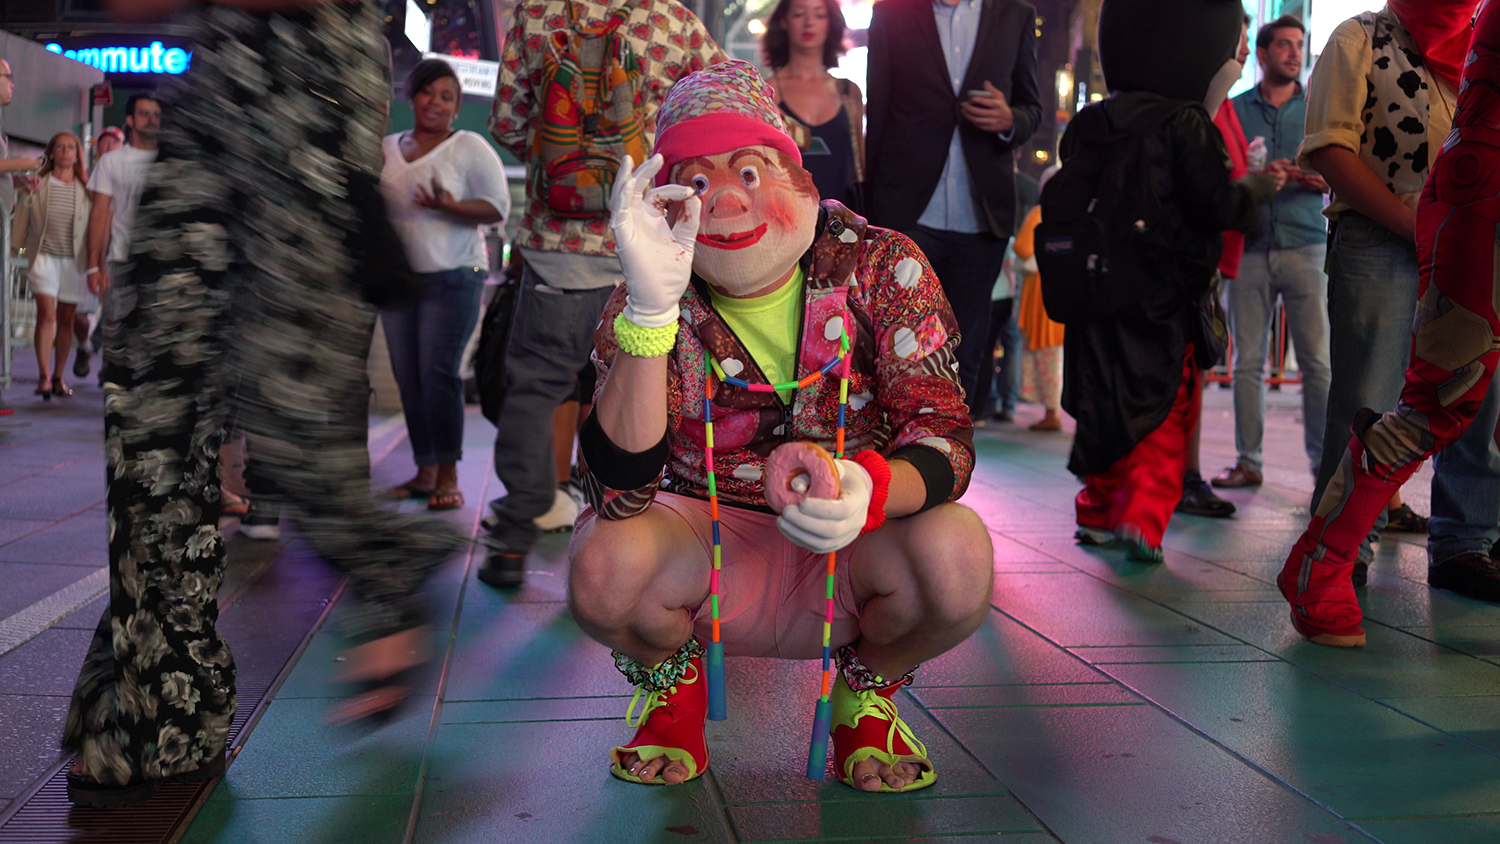 Video still from footage shot on-location in Times Square, New York June, 2016 during production of LIFE IS SEXY. Camera: Jodie Whalen.